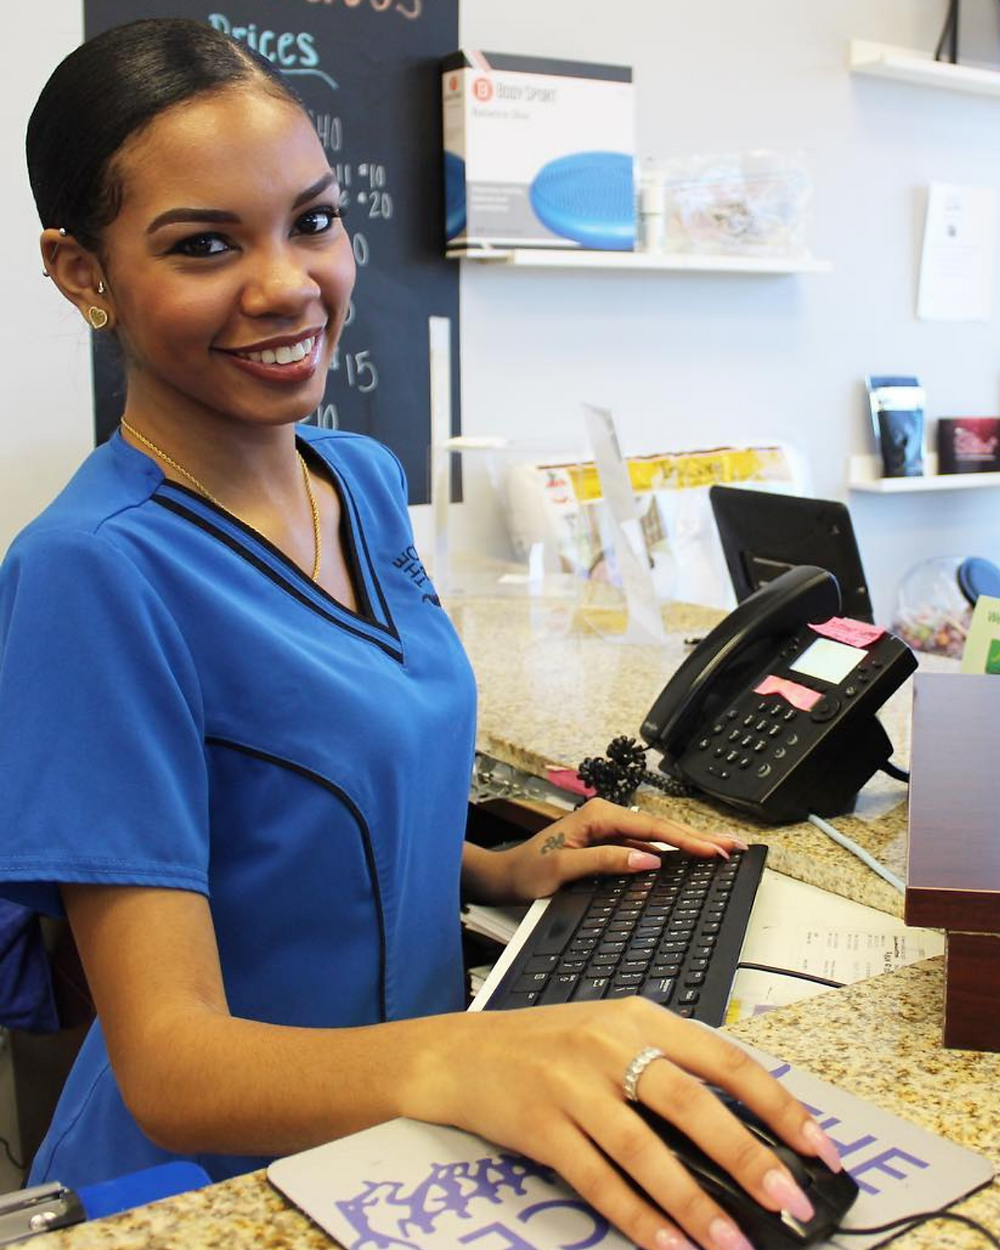 smiling woman in The Chiro Place uniform